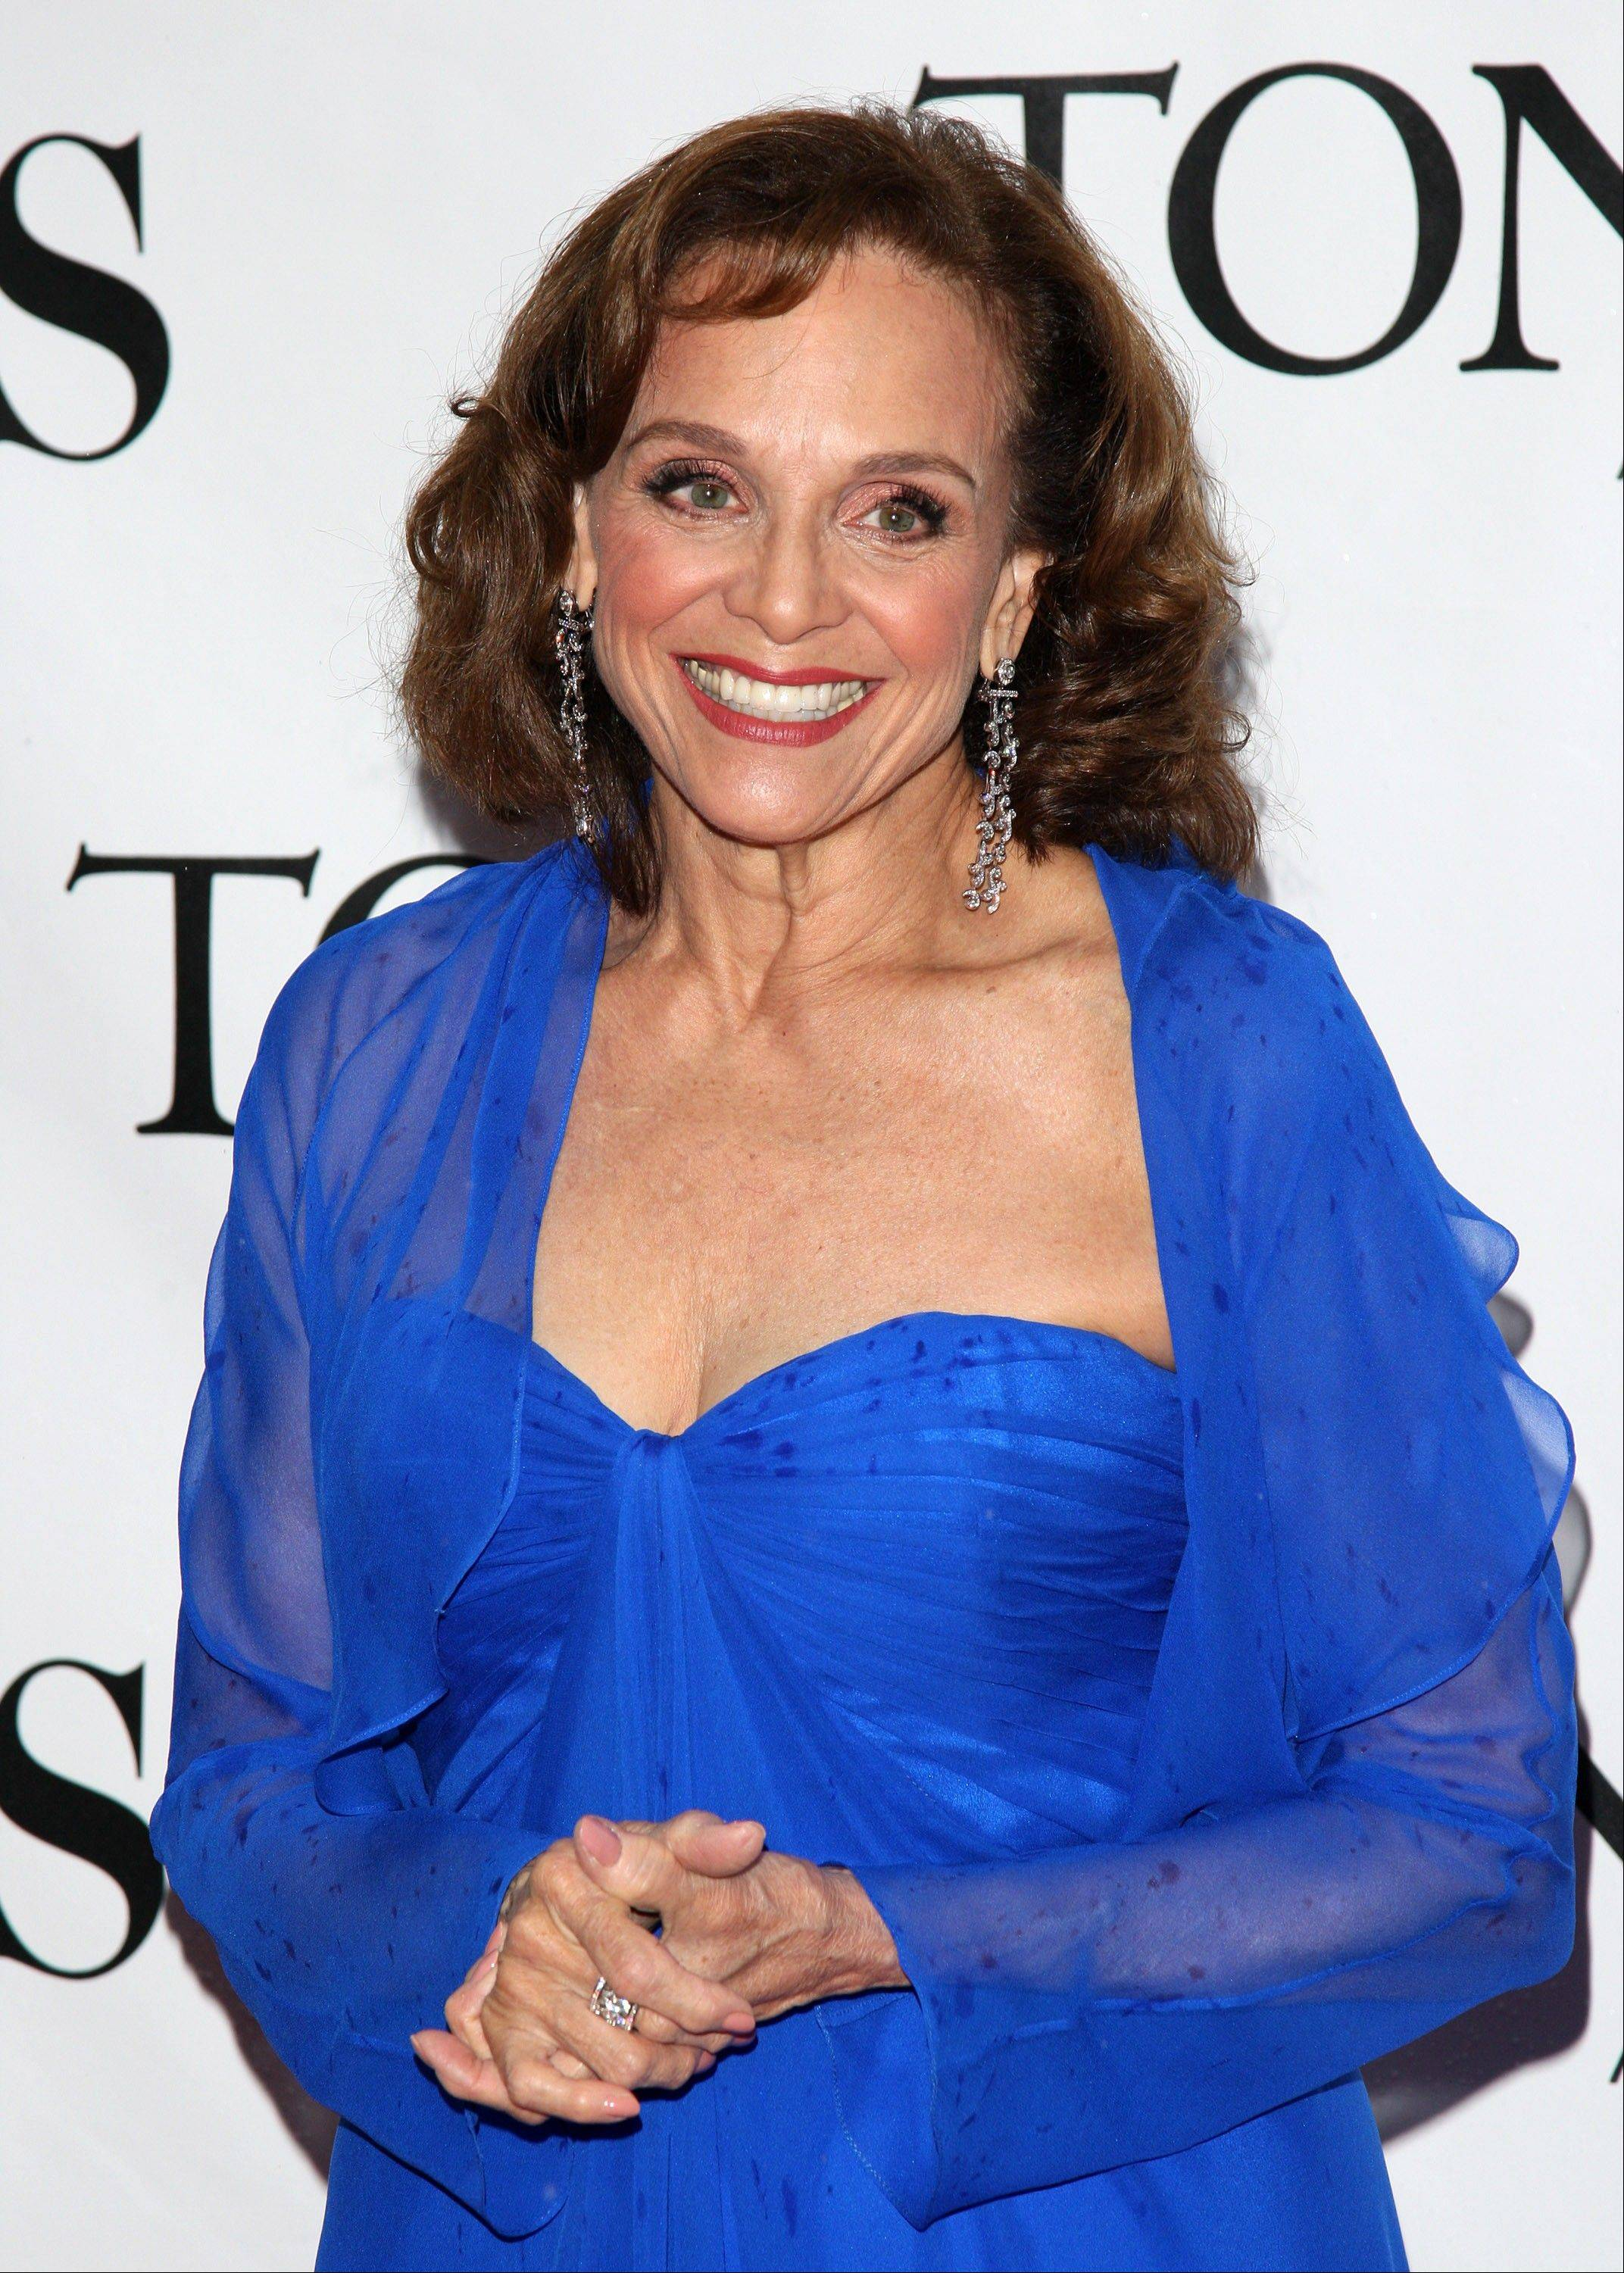 Valerie Harper, who played Rhoda Morgenstern on television in the 1970s, has been diagnosed with terminal brain cancer, according to a report Wednesday. She's 73.